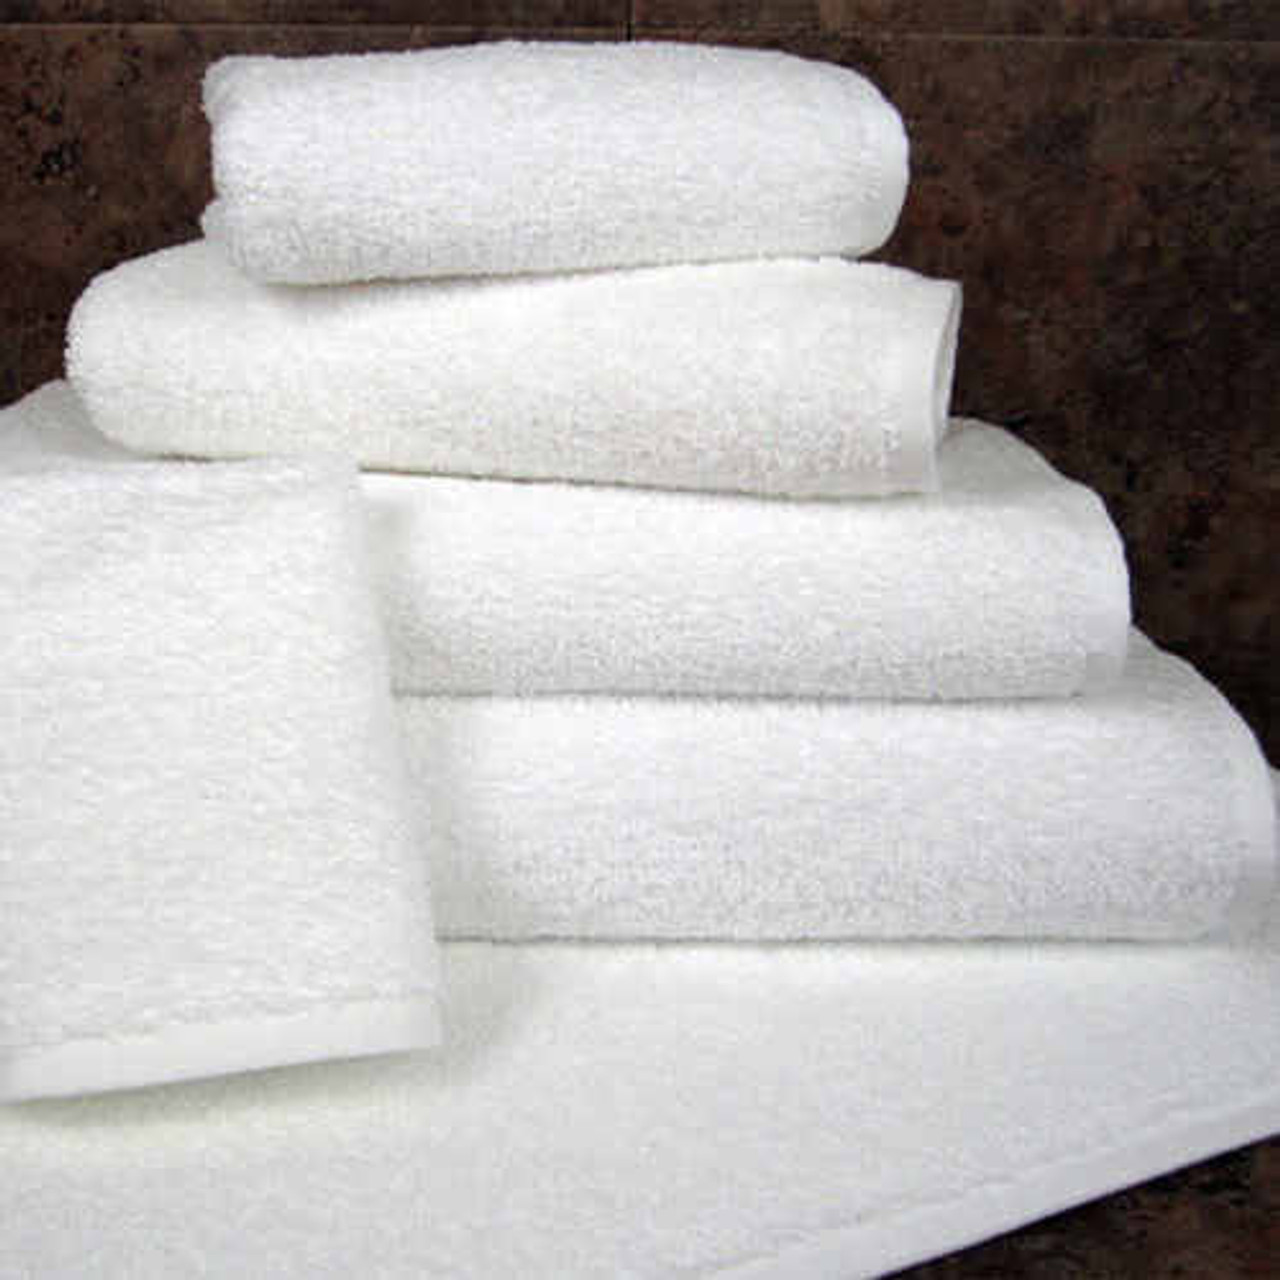 1888 Mills 1888 Mills Towels or Freedom Borderless Terry or Wholesale in Bulk